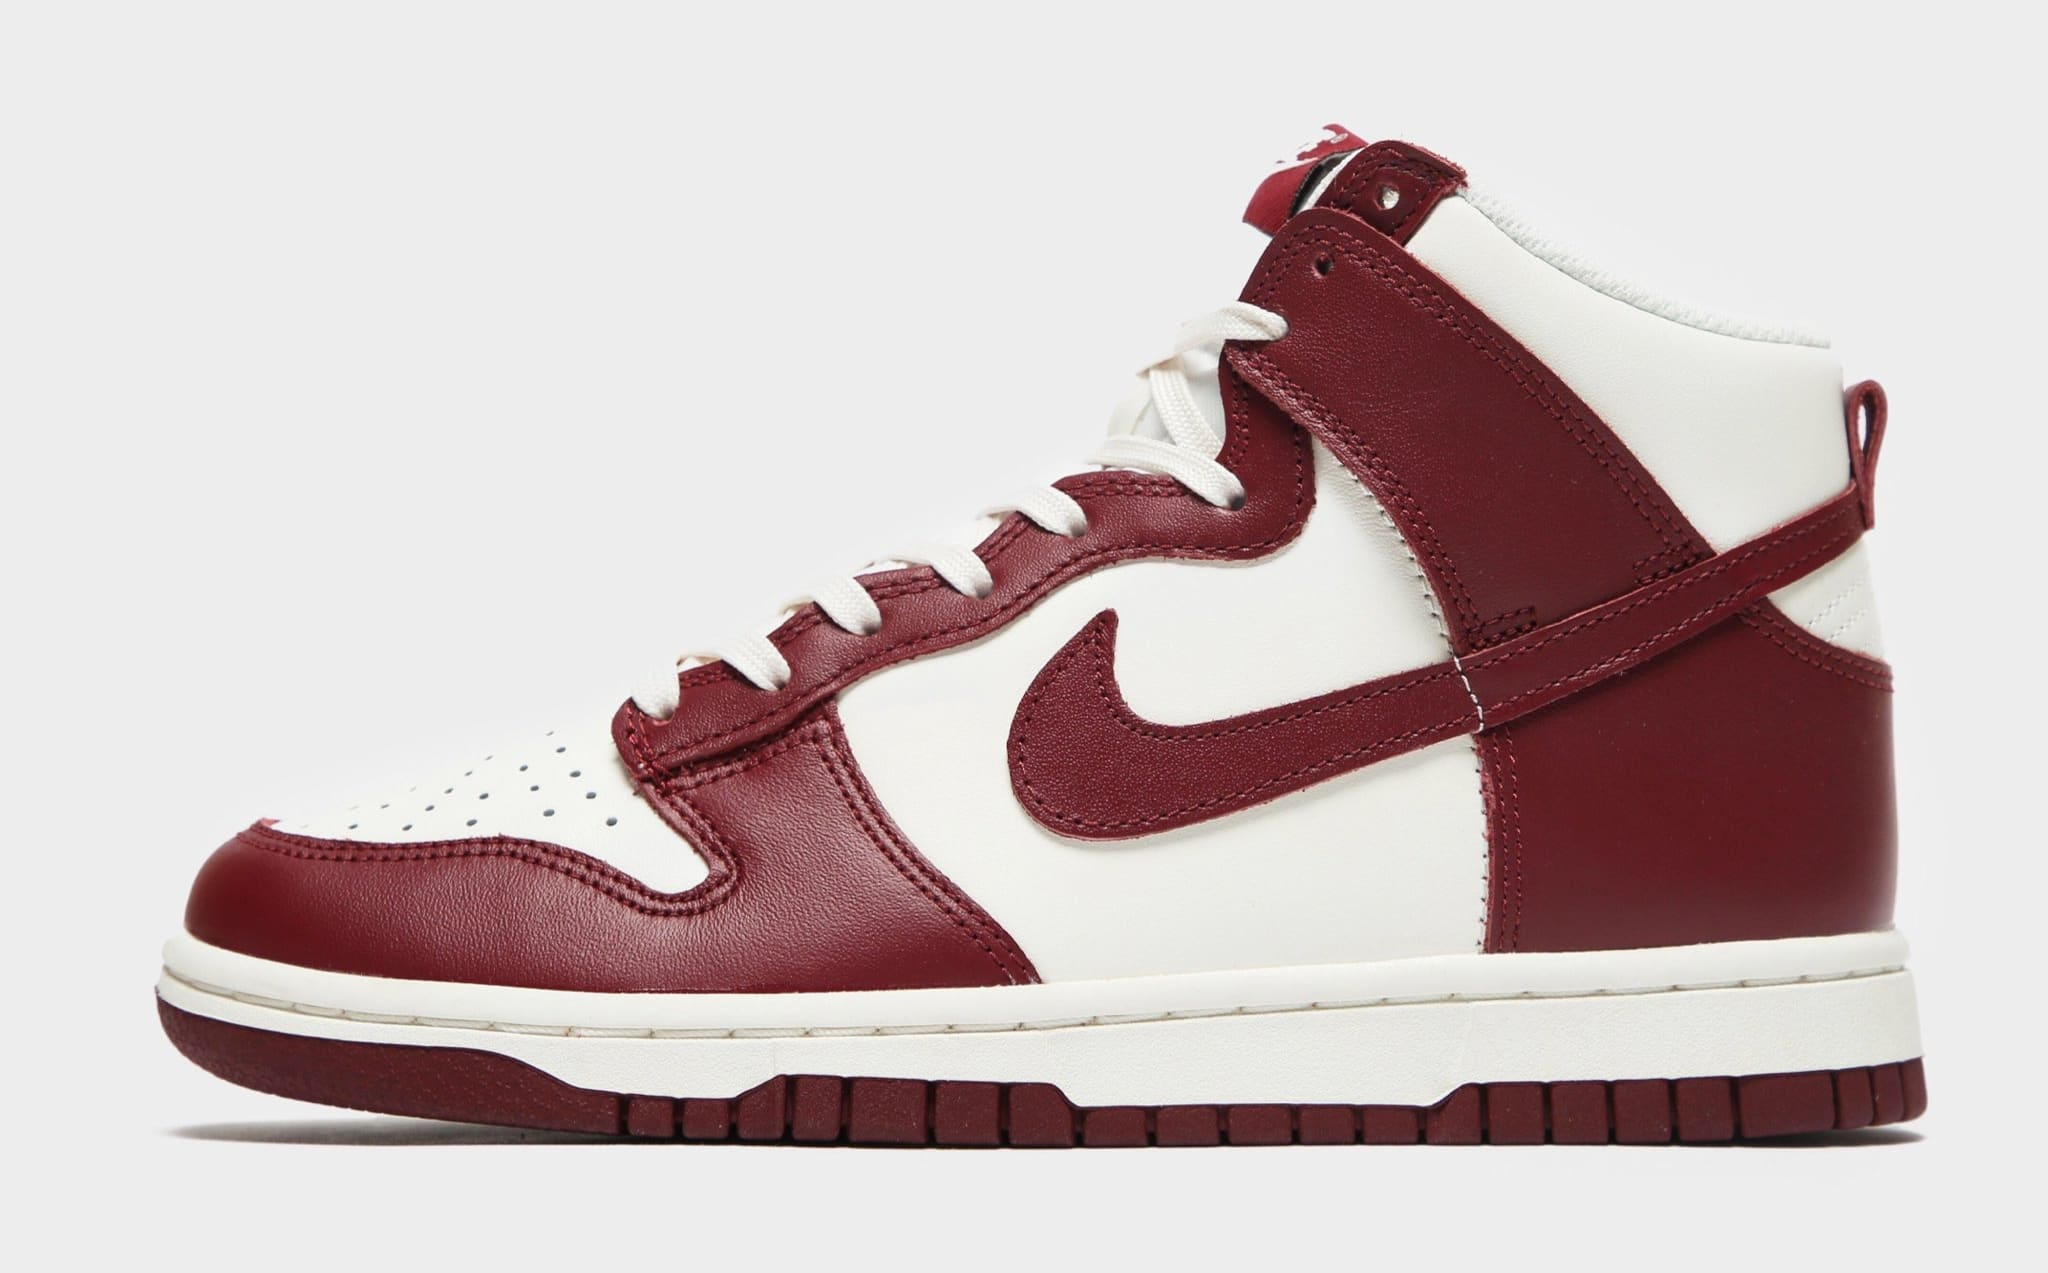 Nike Dunk High Women's 'Team Red' DD1869-101 Lateral